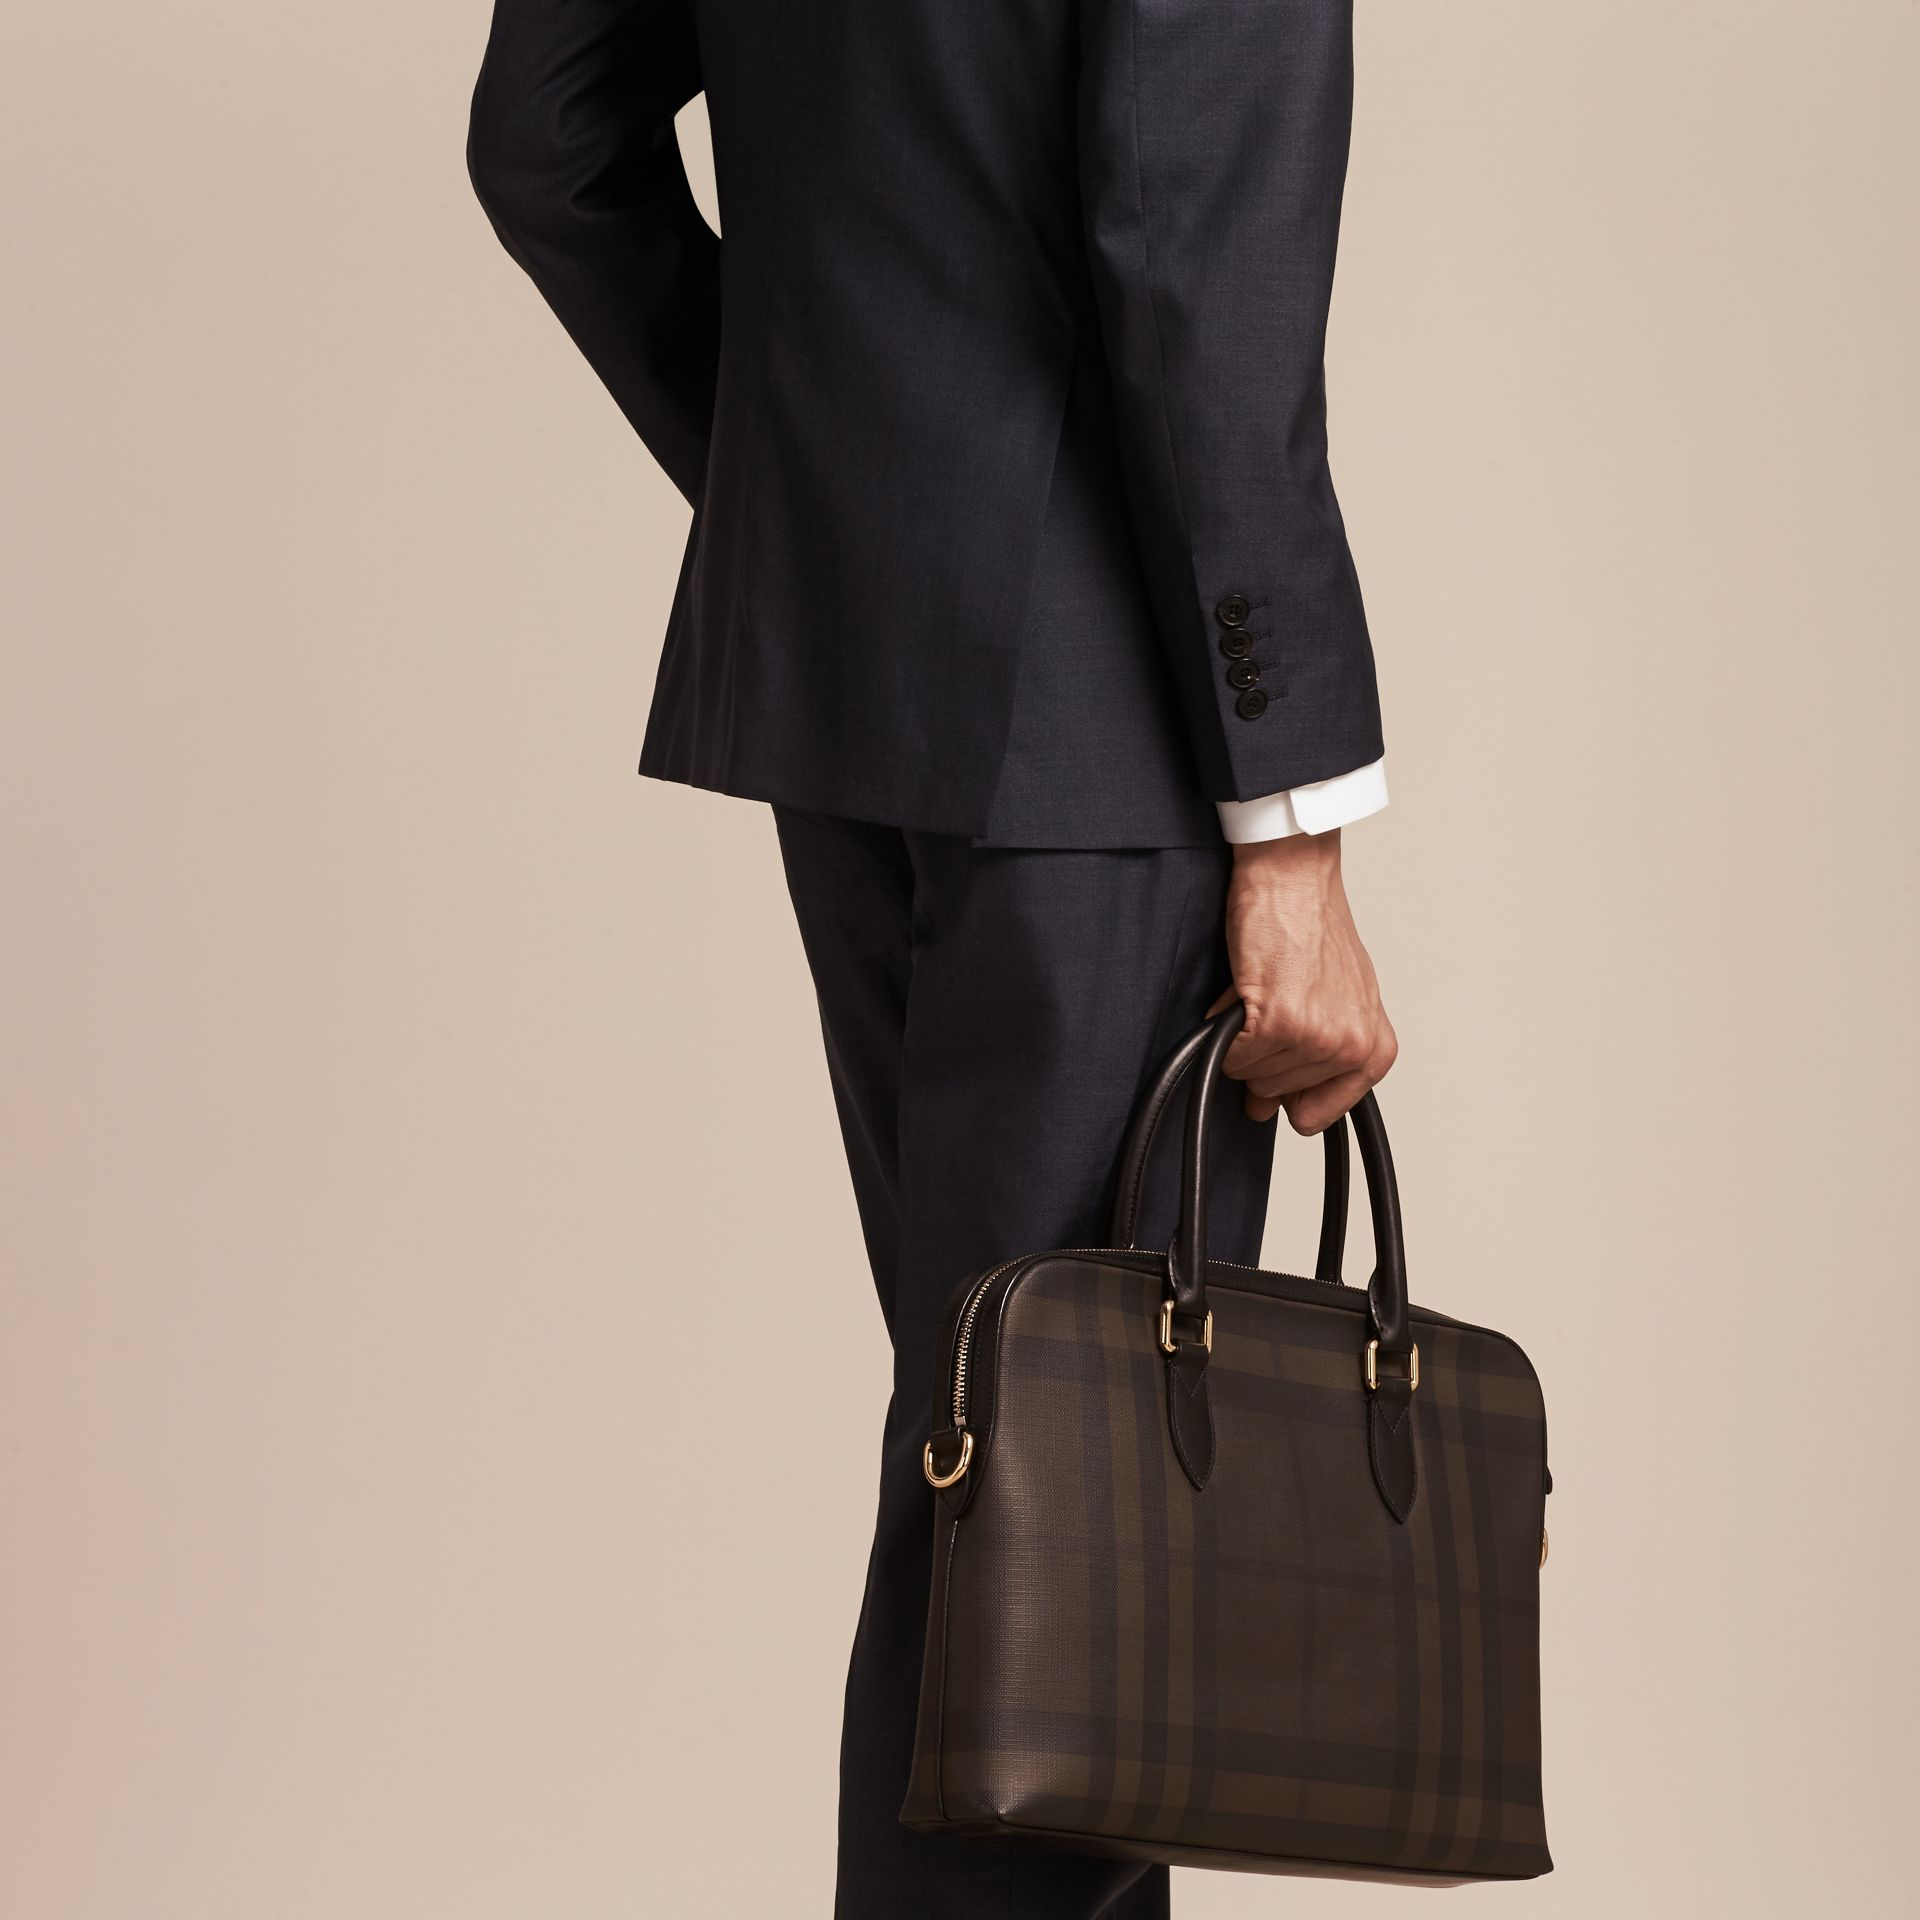 Sac The Barrow fin avec motif London check (Chocolat/noir) - photo de la galerie 3